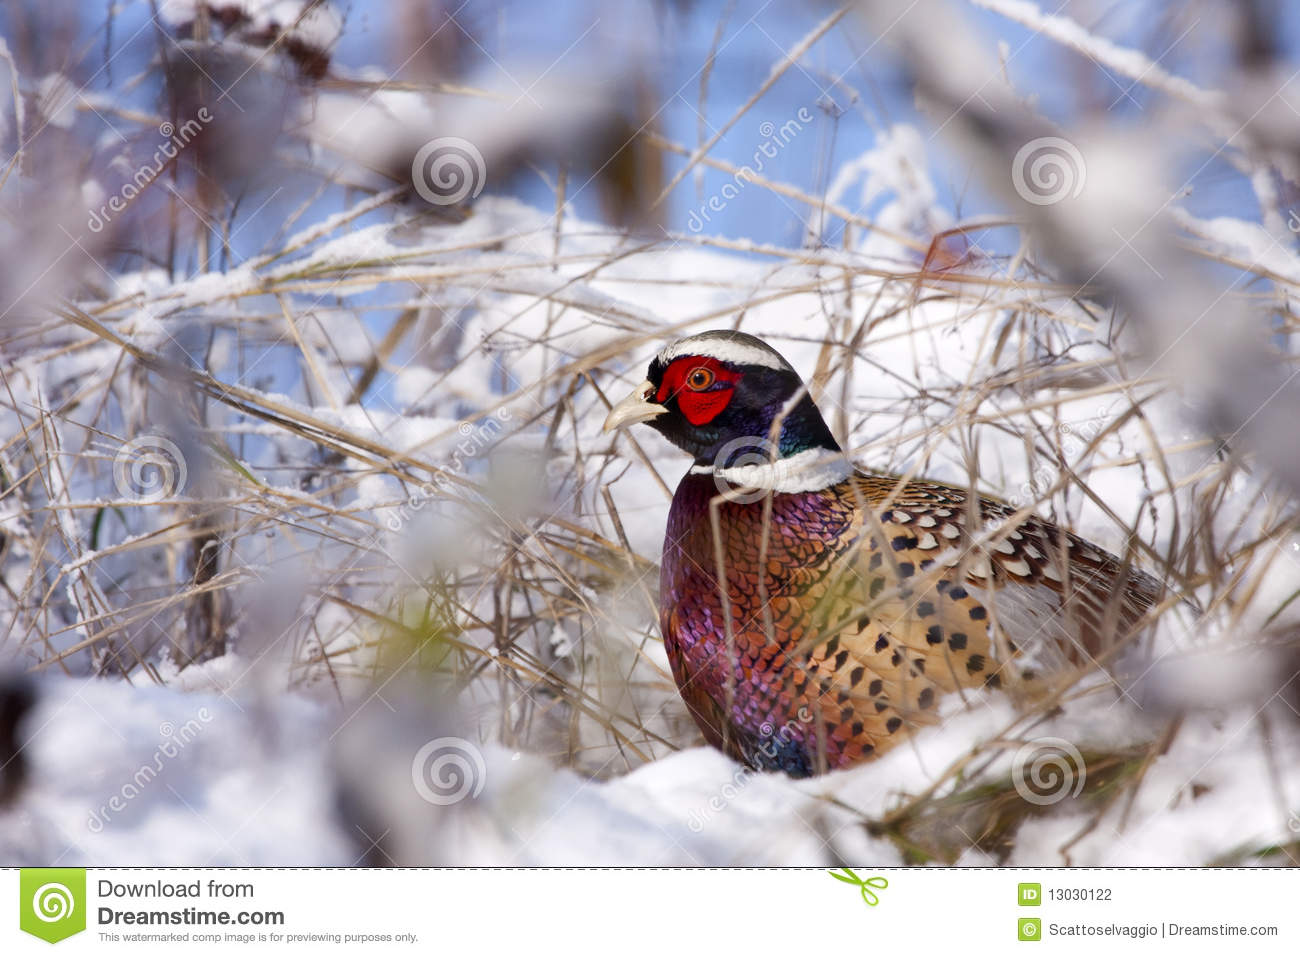 Male Pheasant on snow, (Phasianus colchicus mongolicus).